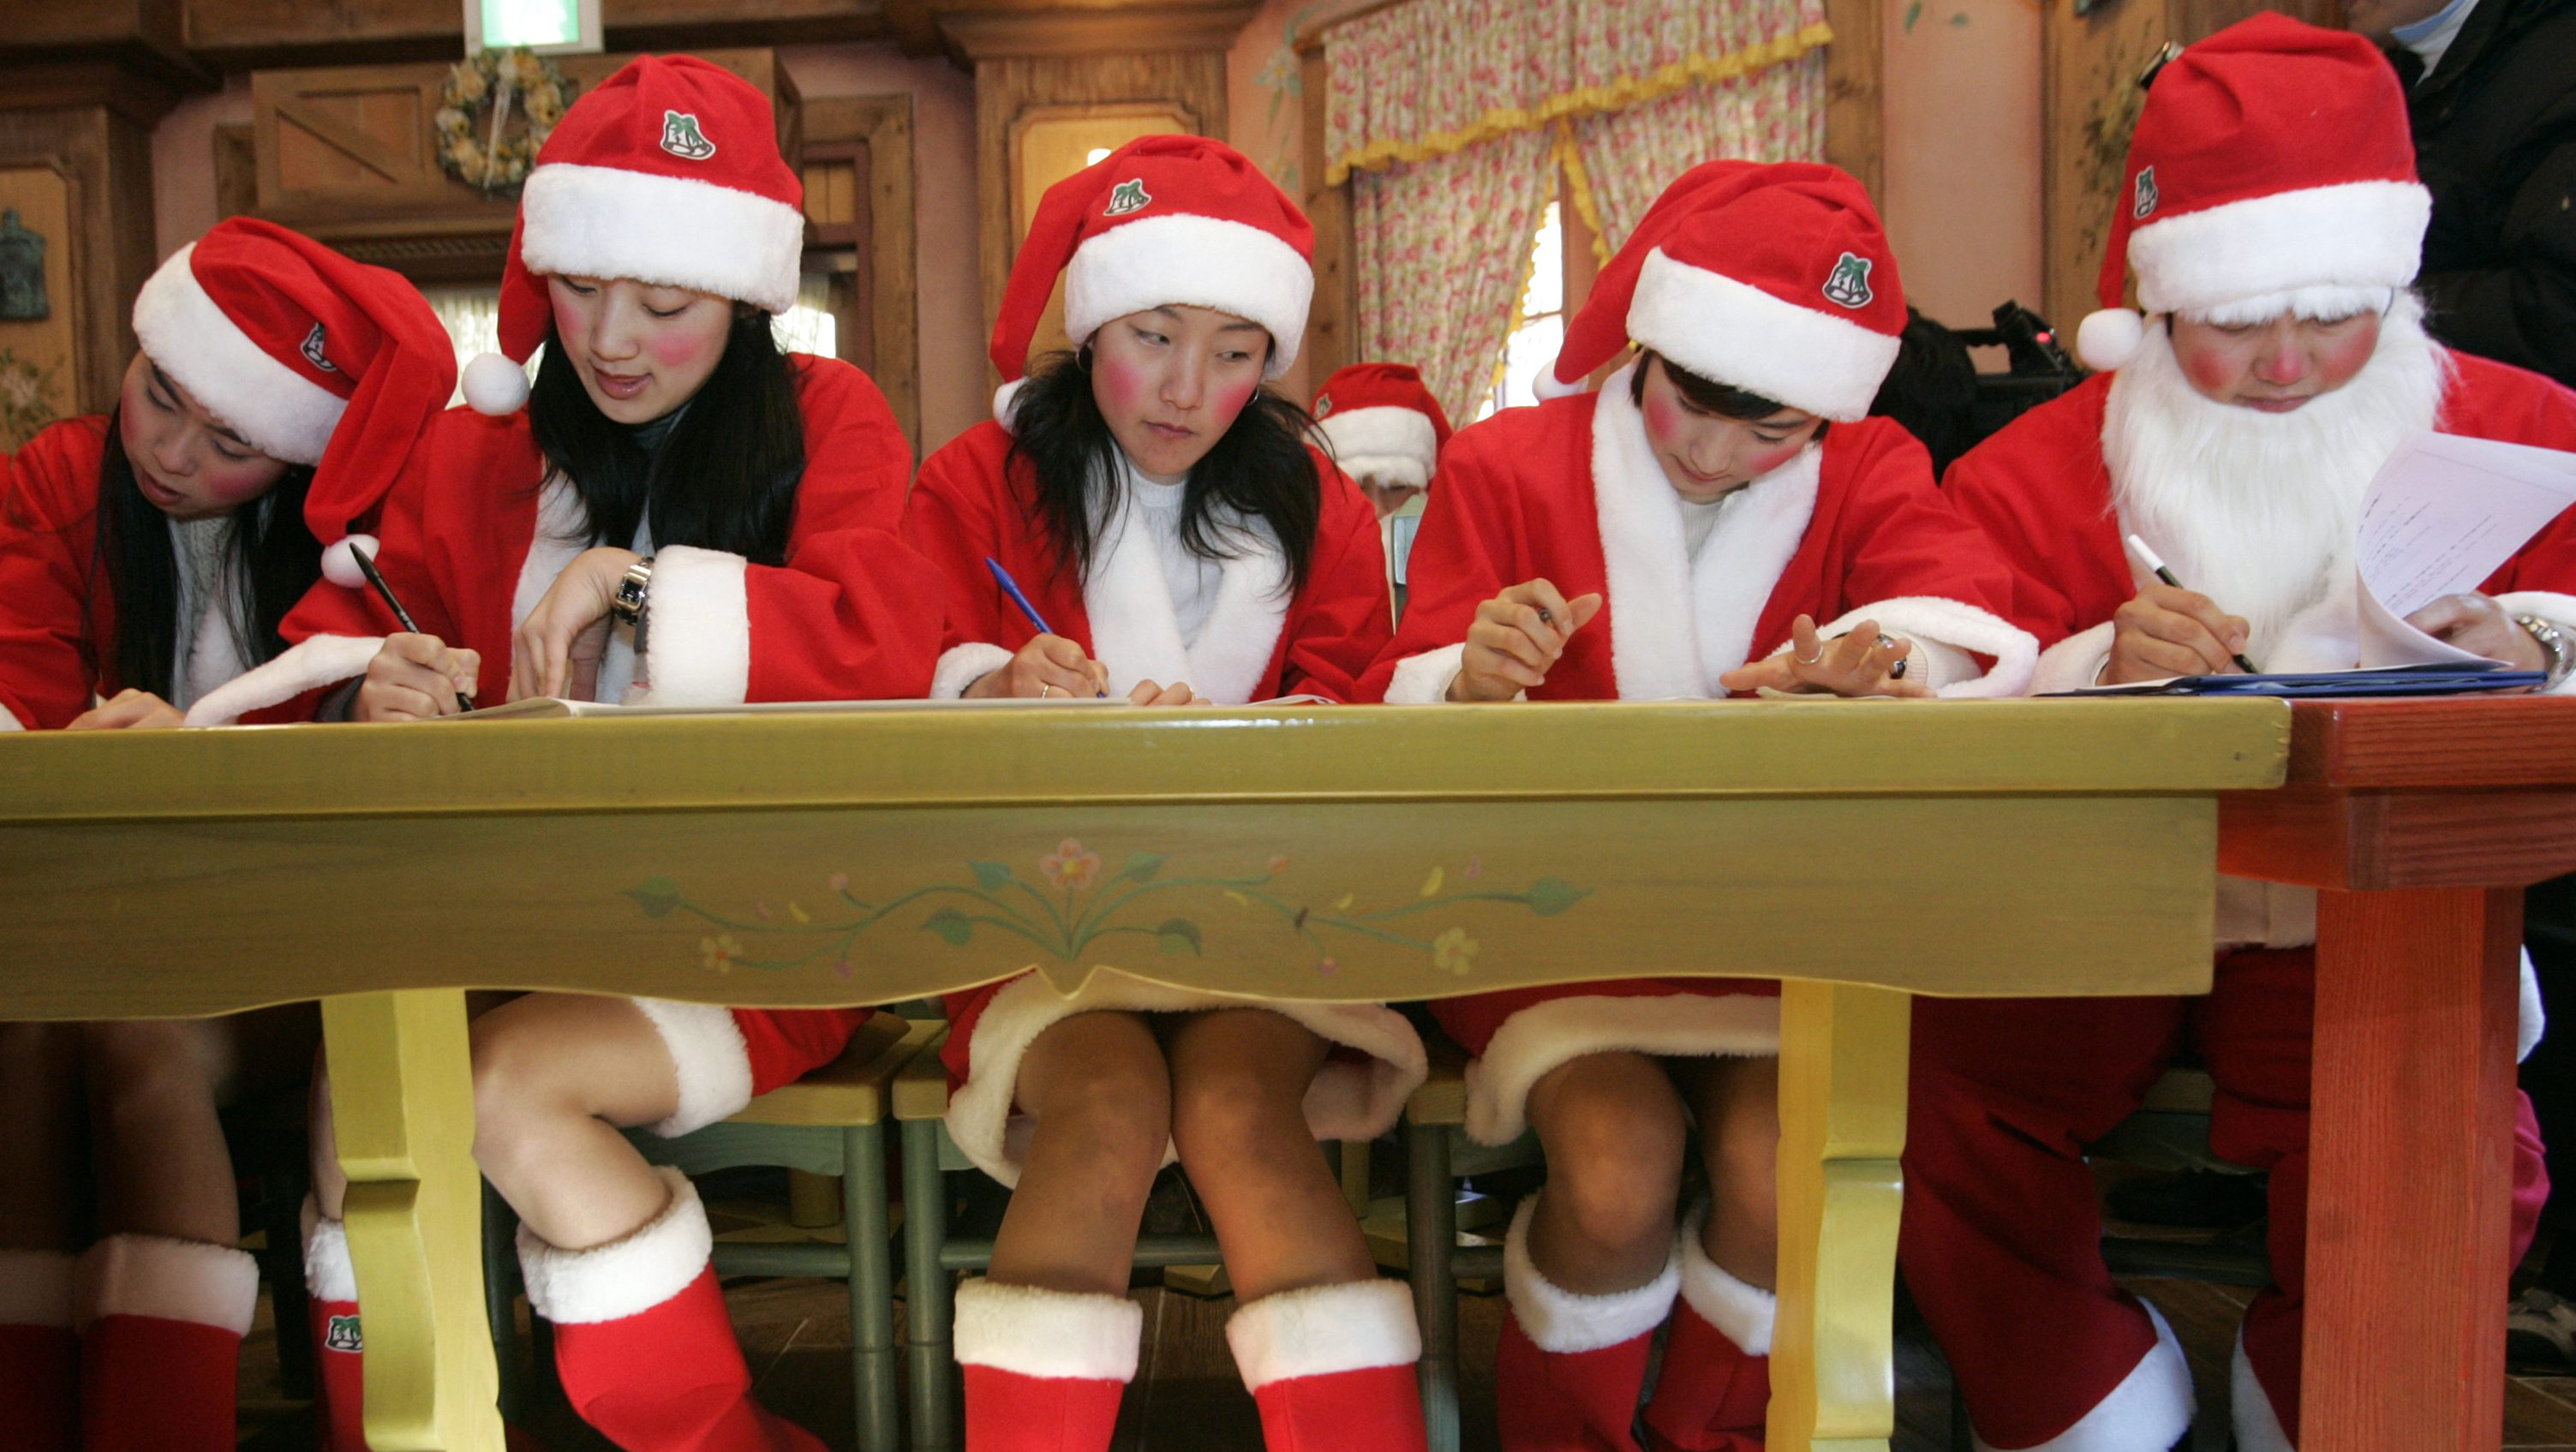 Kids study in Santa outfits.